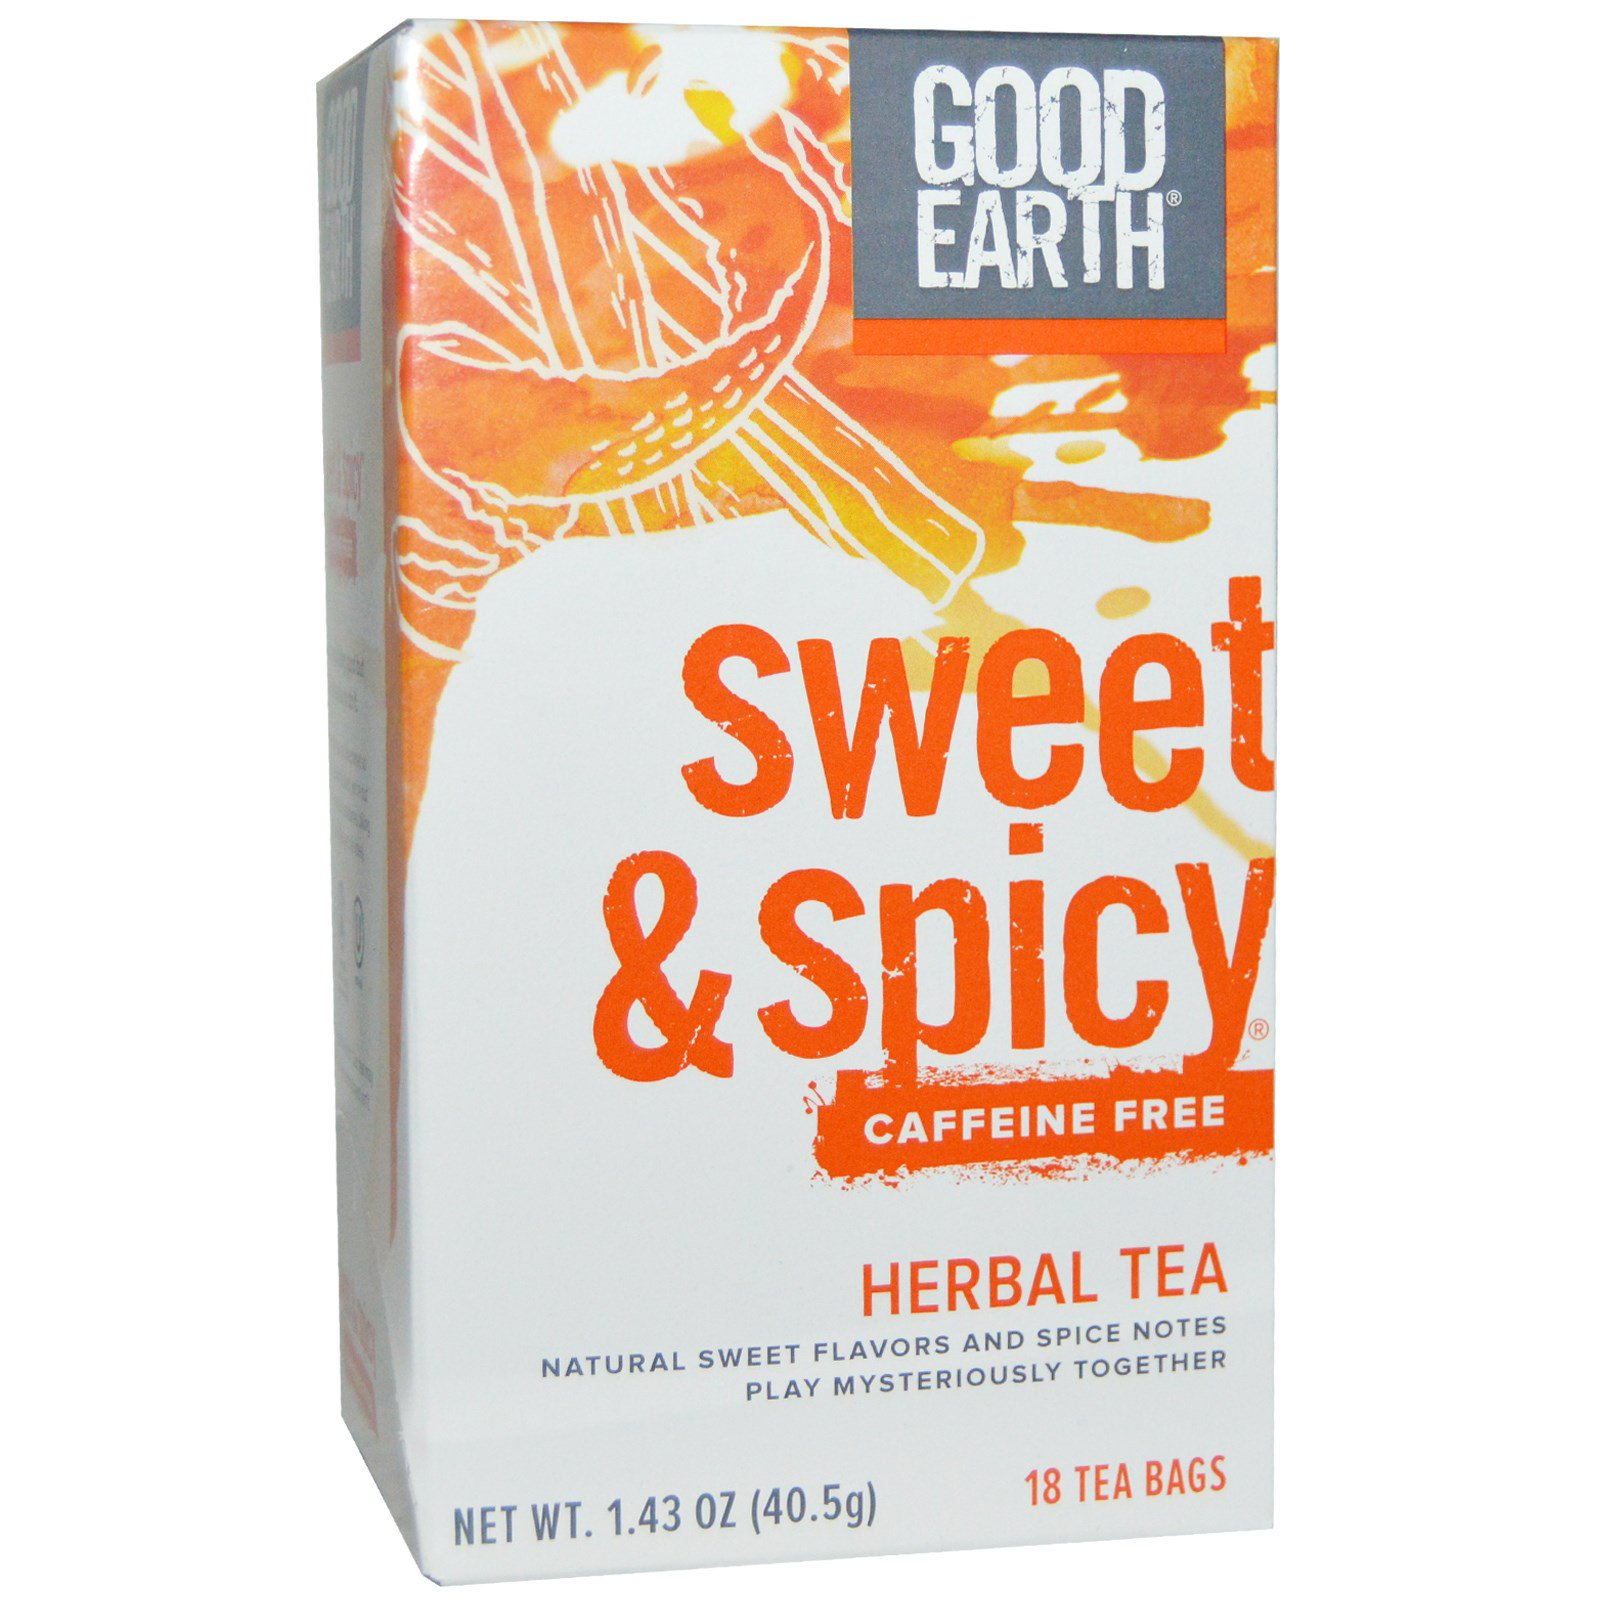 Good Earth Teas, Sweet & Spicy, Caffeine Free, Herbal Tea, 18 Tea Bags, 1.43 oz (pack of 4)